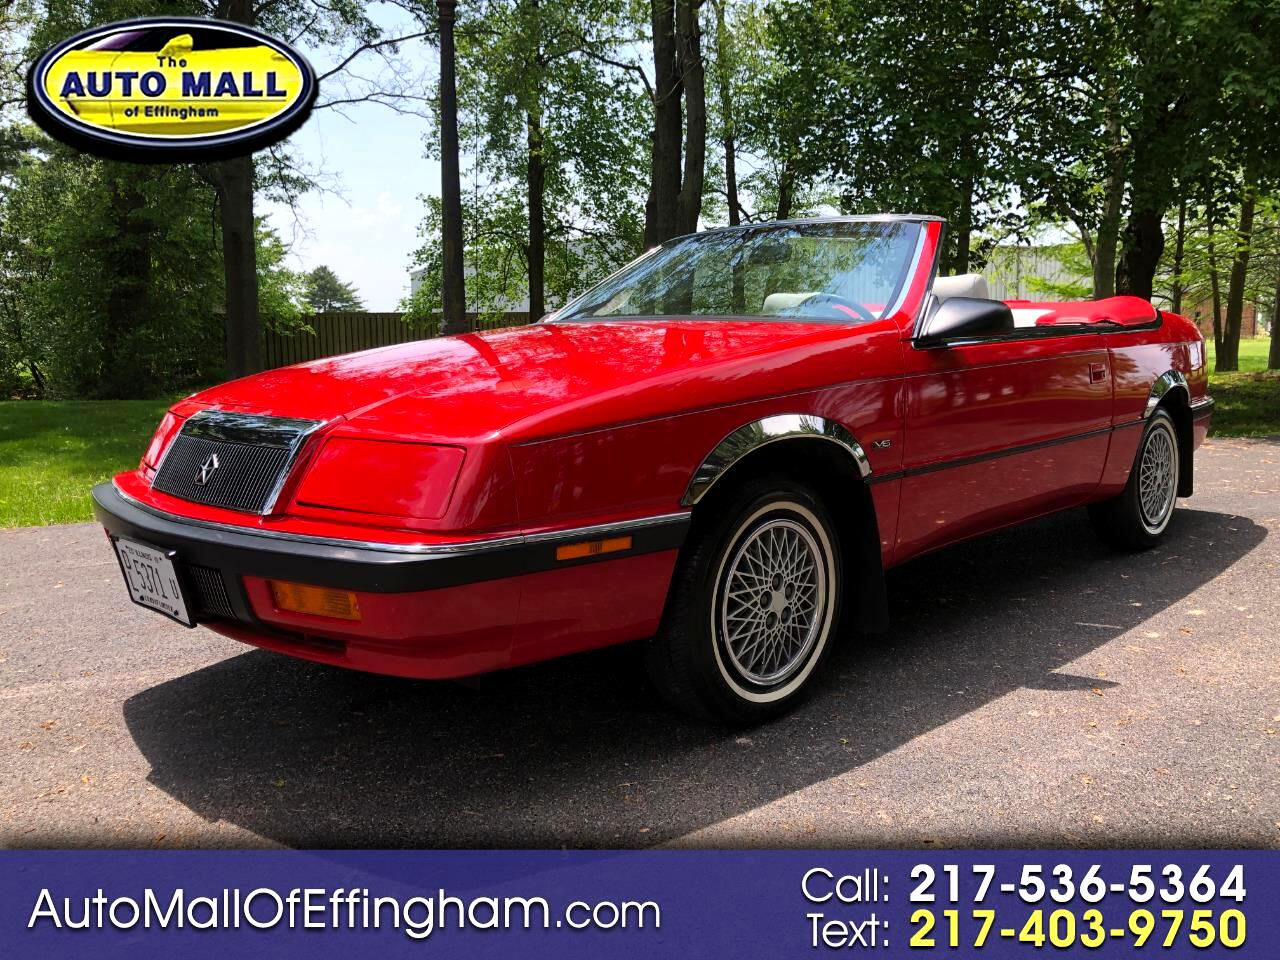 1991 Chrysler LeBaron 2dr Convertible High